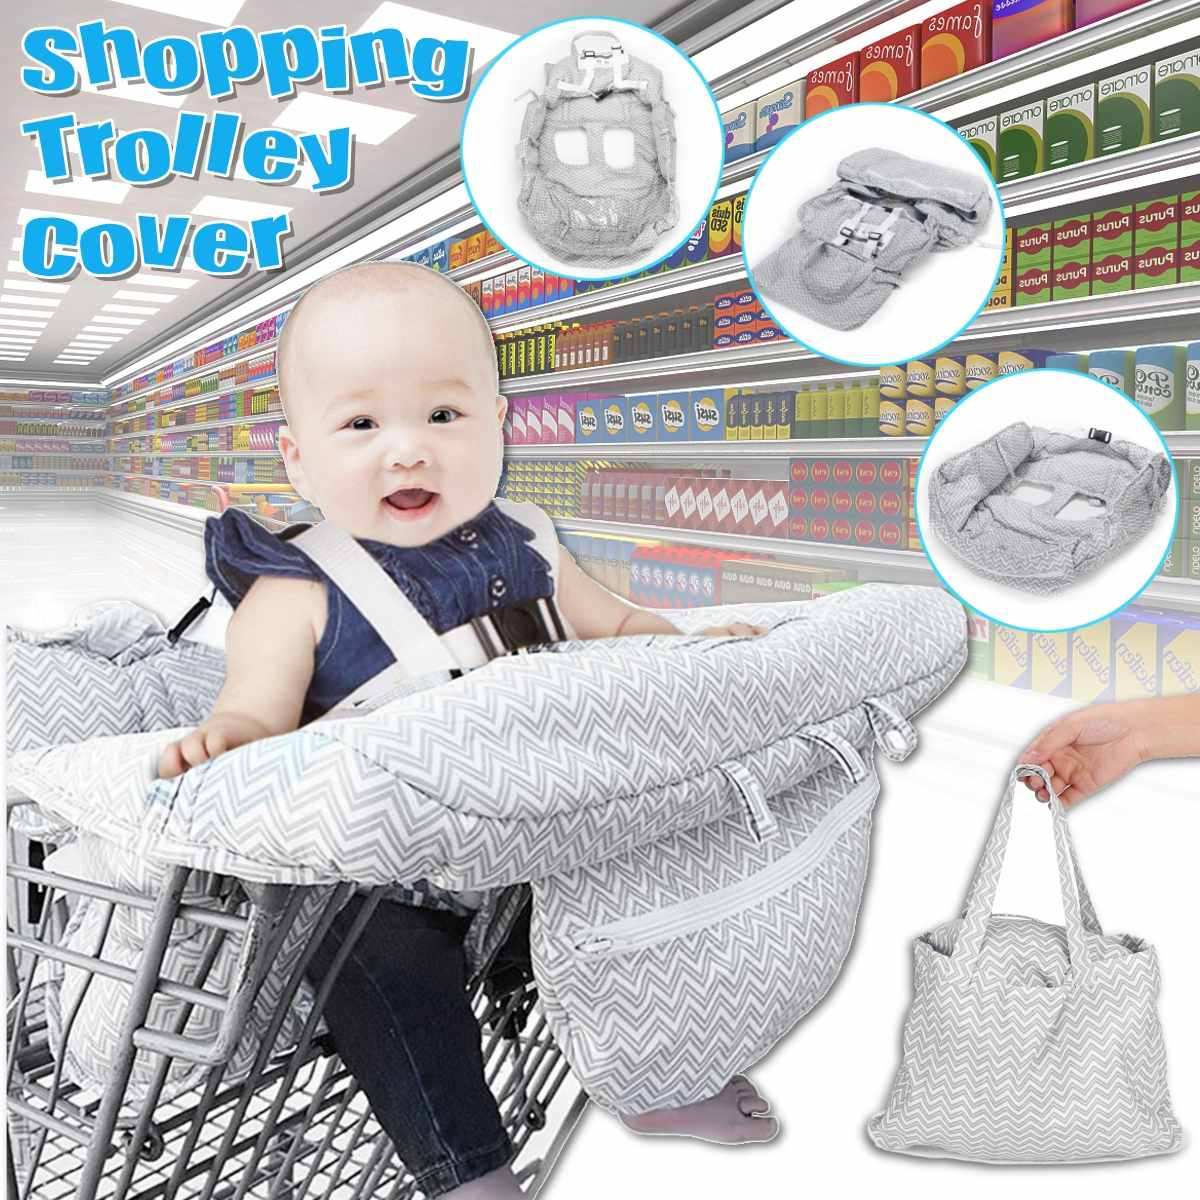 Foldable Baby Supermarket Shopping Cart Cover Baby Safety Seats Kids Chair Mat Anti-Stain Dirty For Shopping Troller High Chair